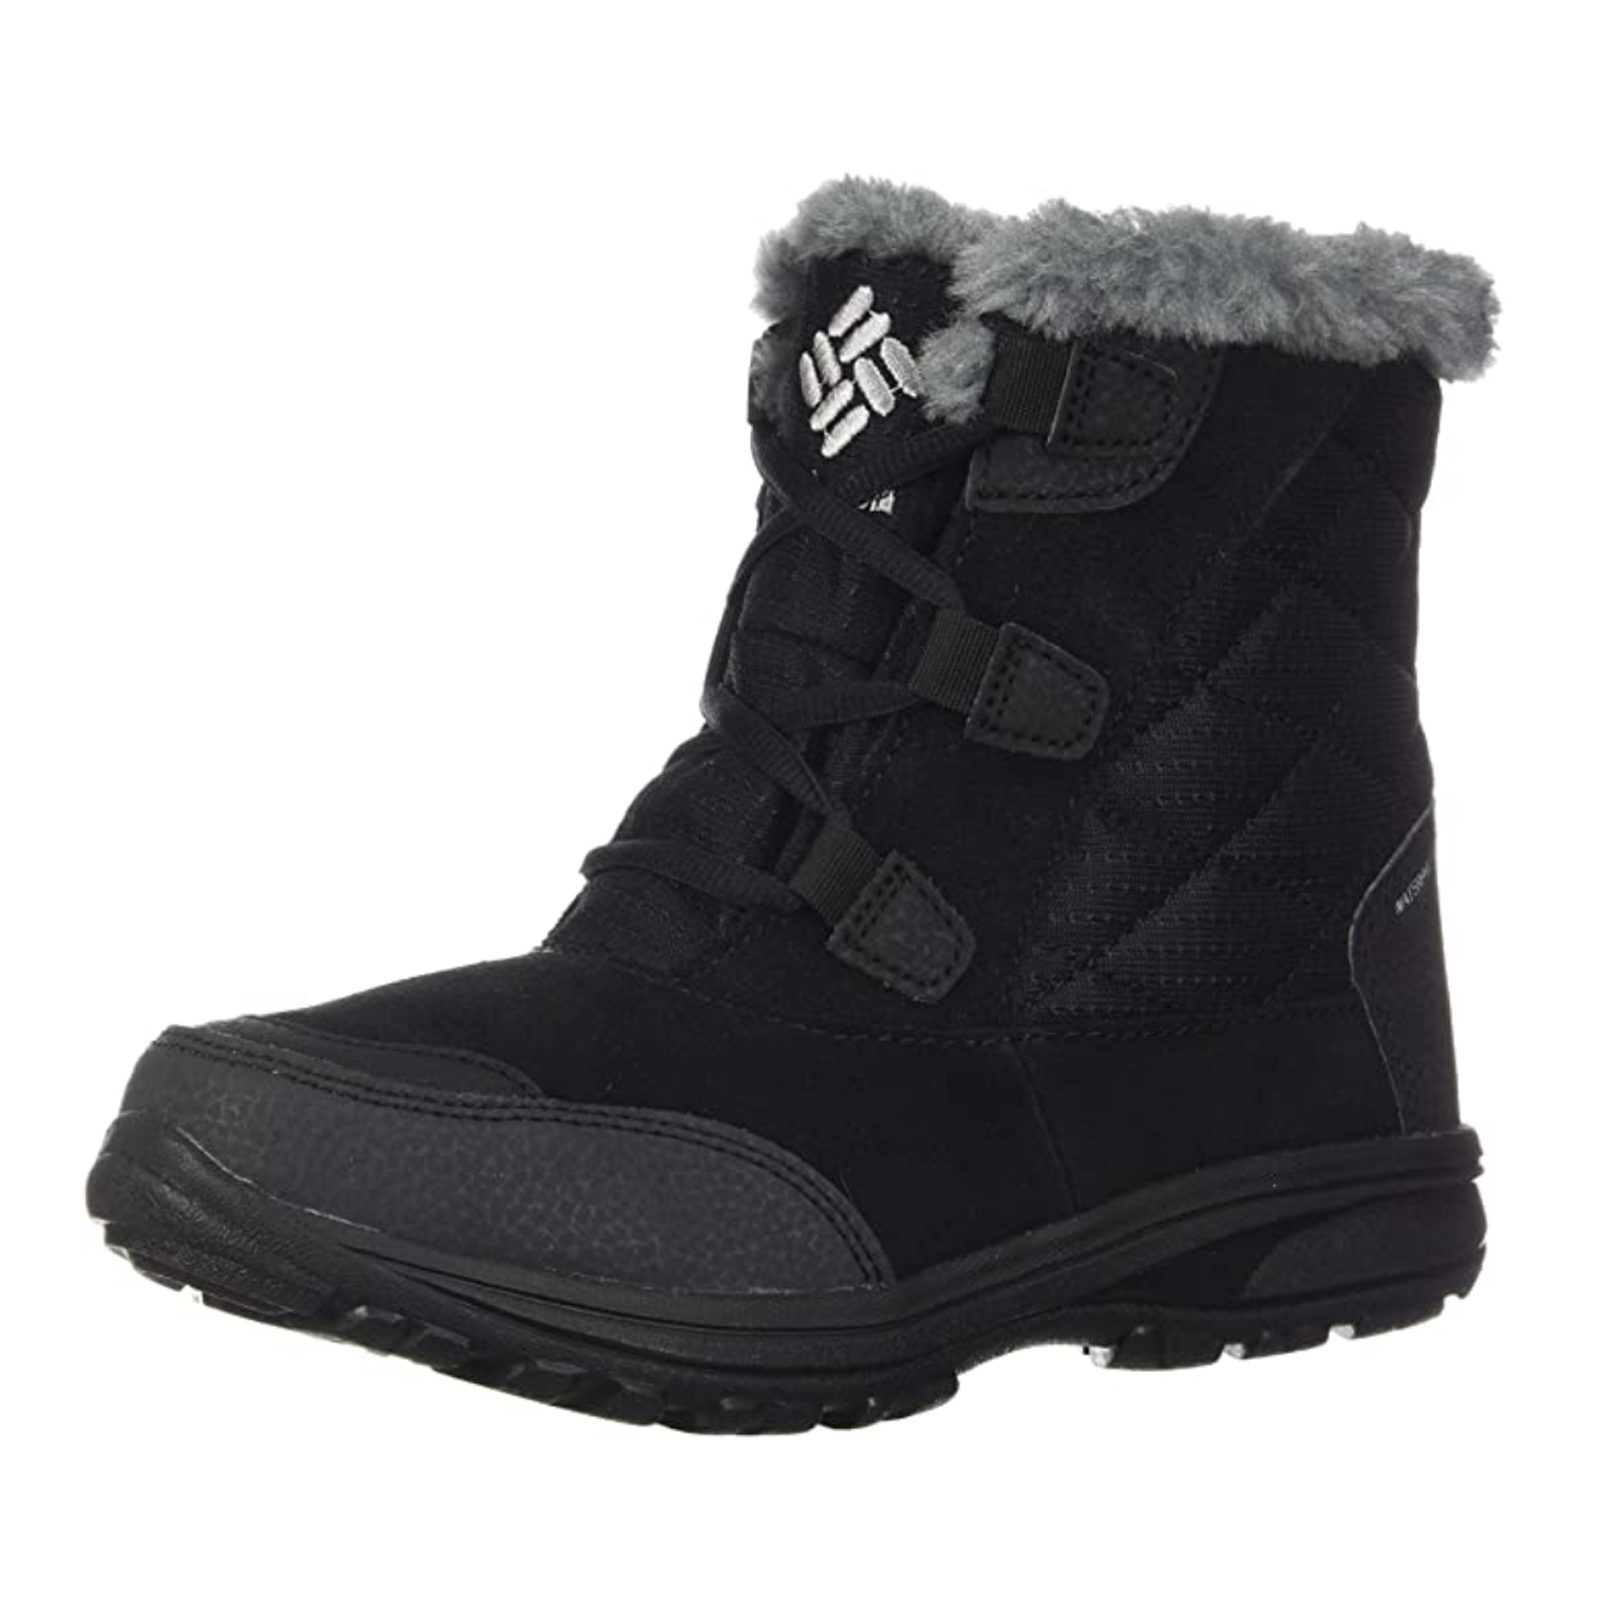 Columbia Women's Ice Maiden Shorty Winter Boot in Waterproof Leather